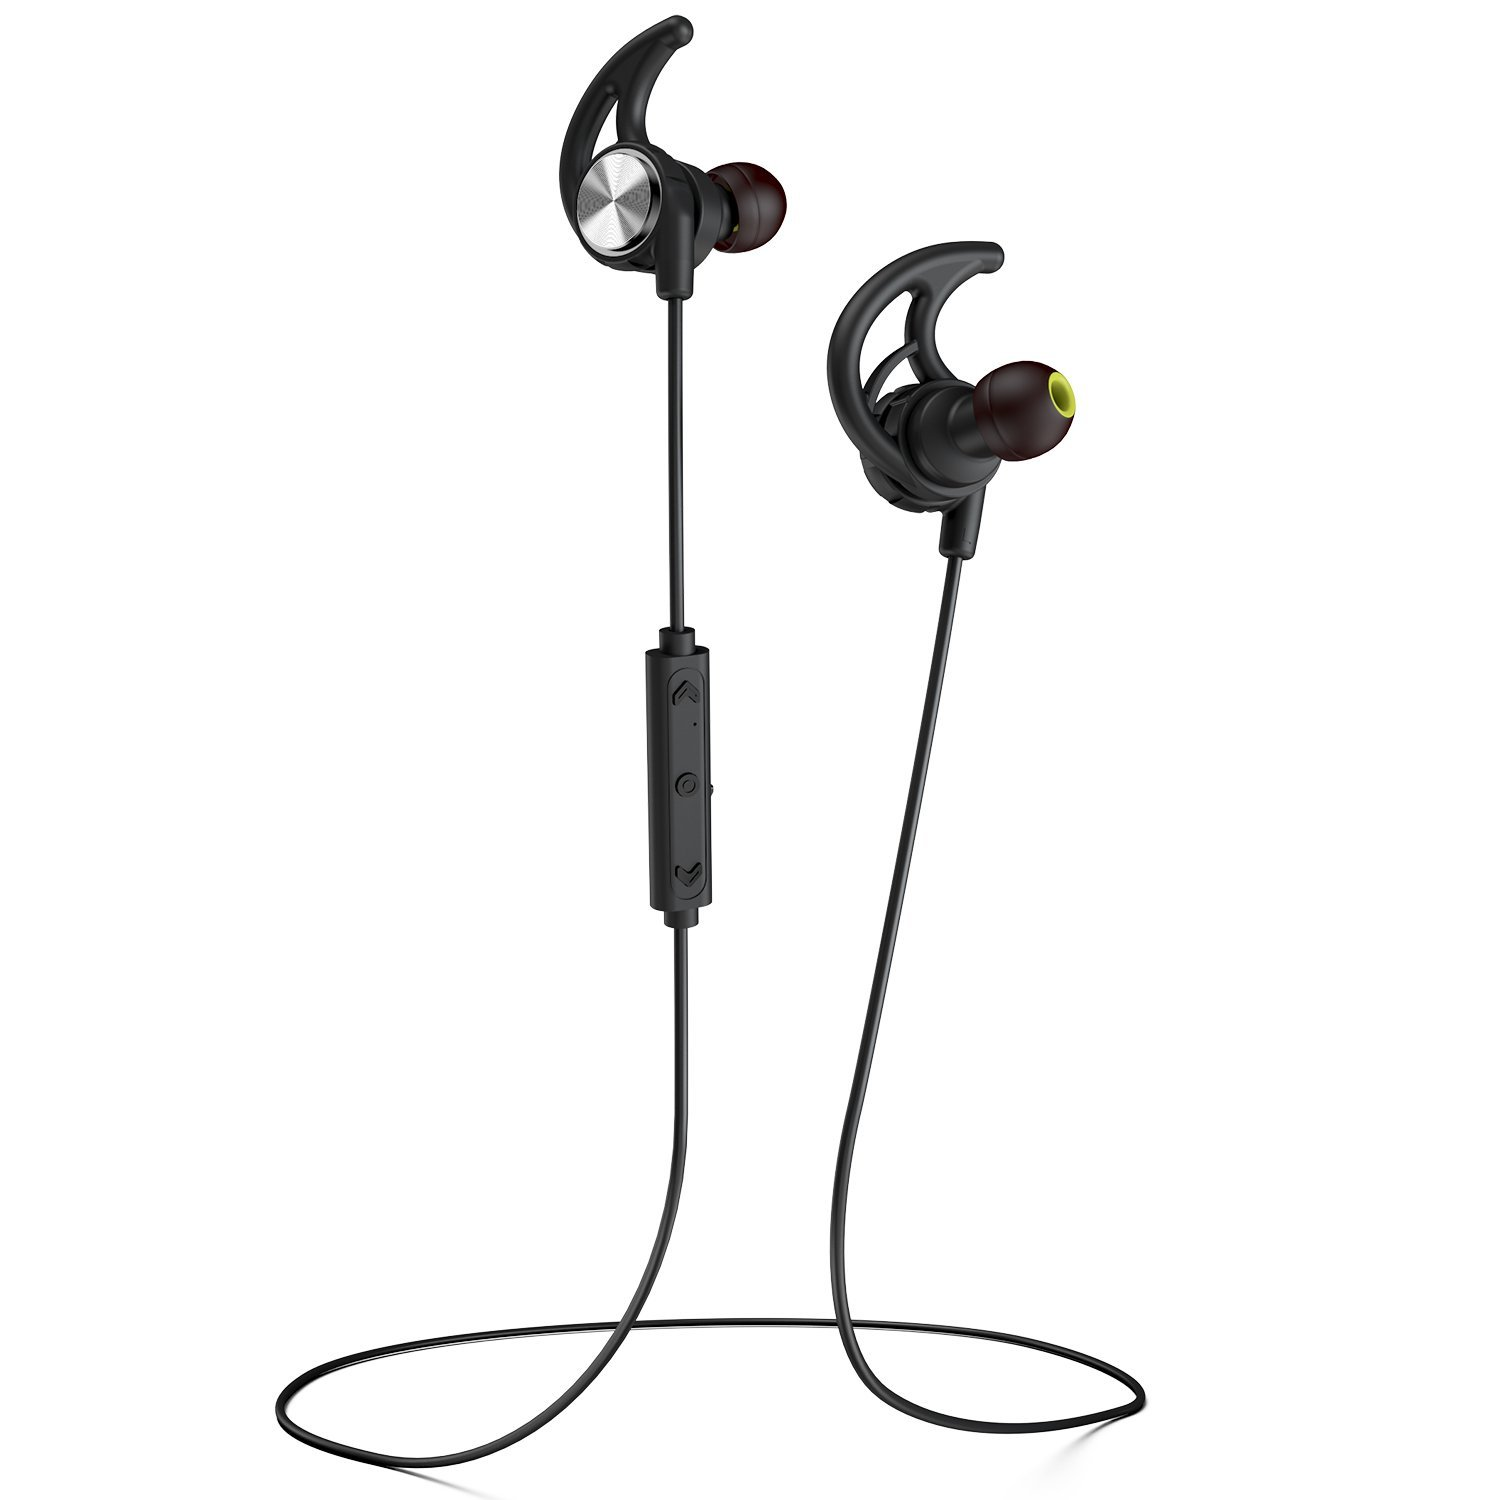 Phaiser BHS-750 Bluetooth Headphones with Mic - Available in 5 Colors